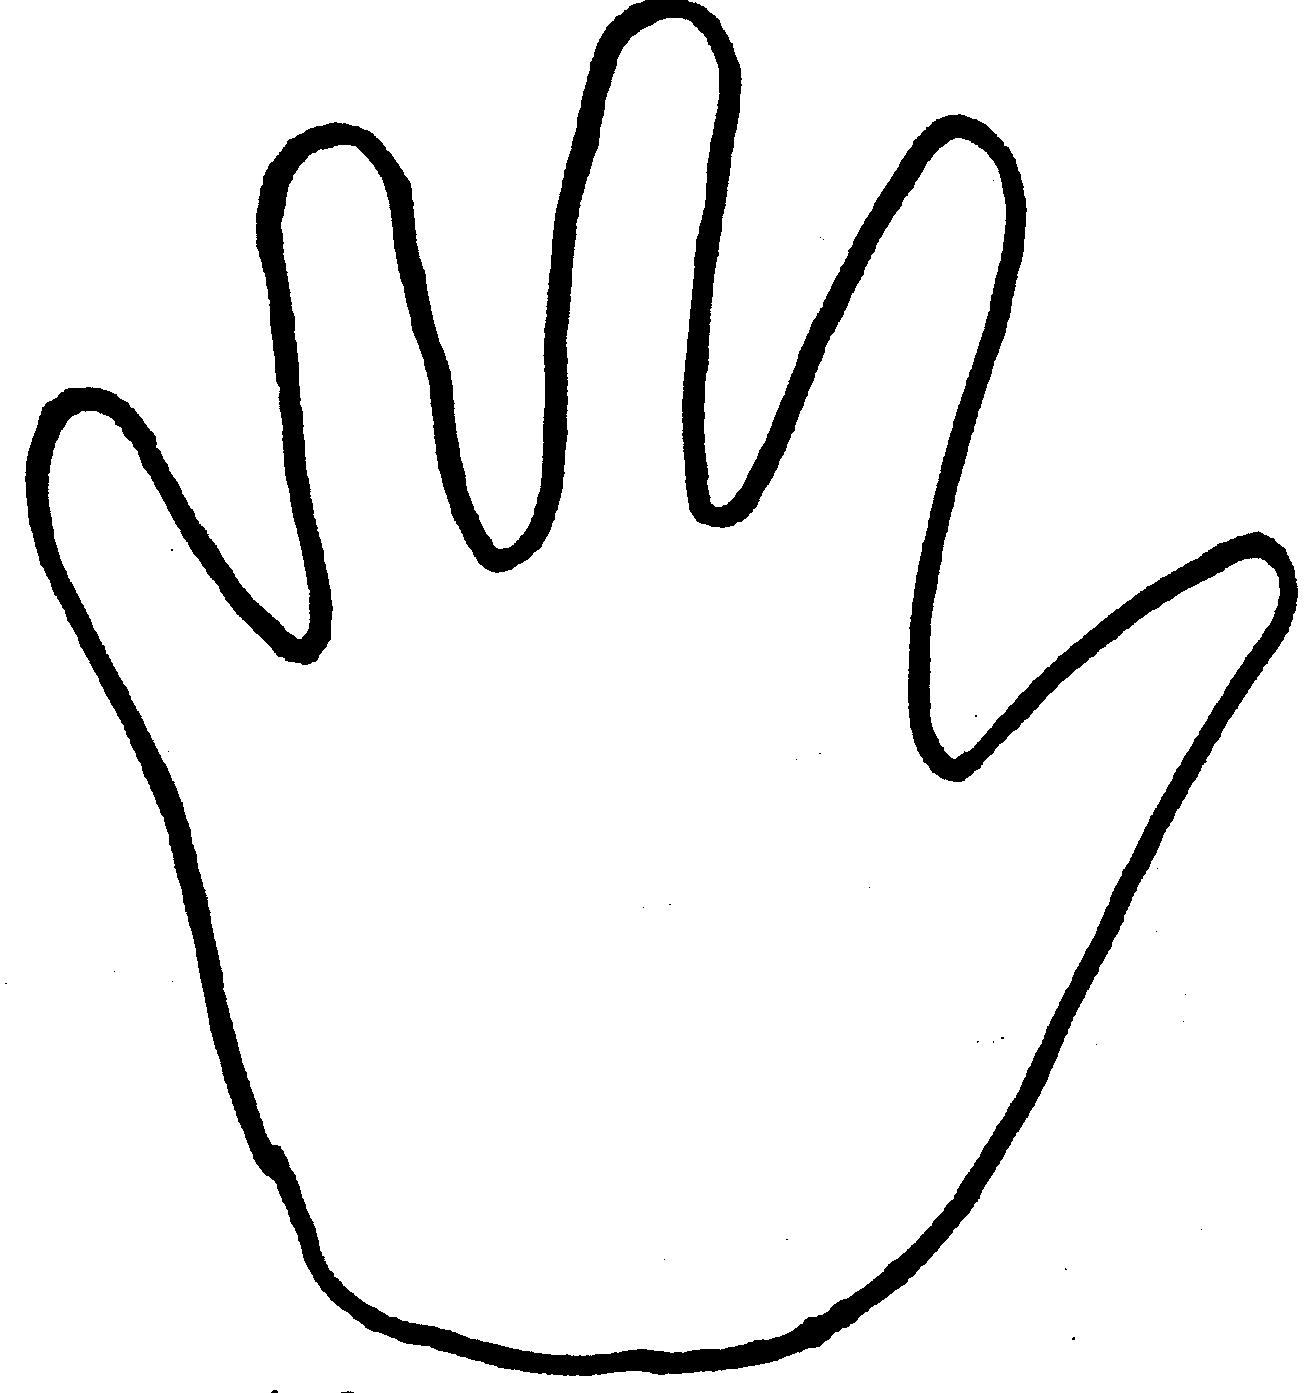 graphic relating to Printable Handprint Template named Handprint Template Absolutely free down load most straightforward Handprint Template